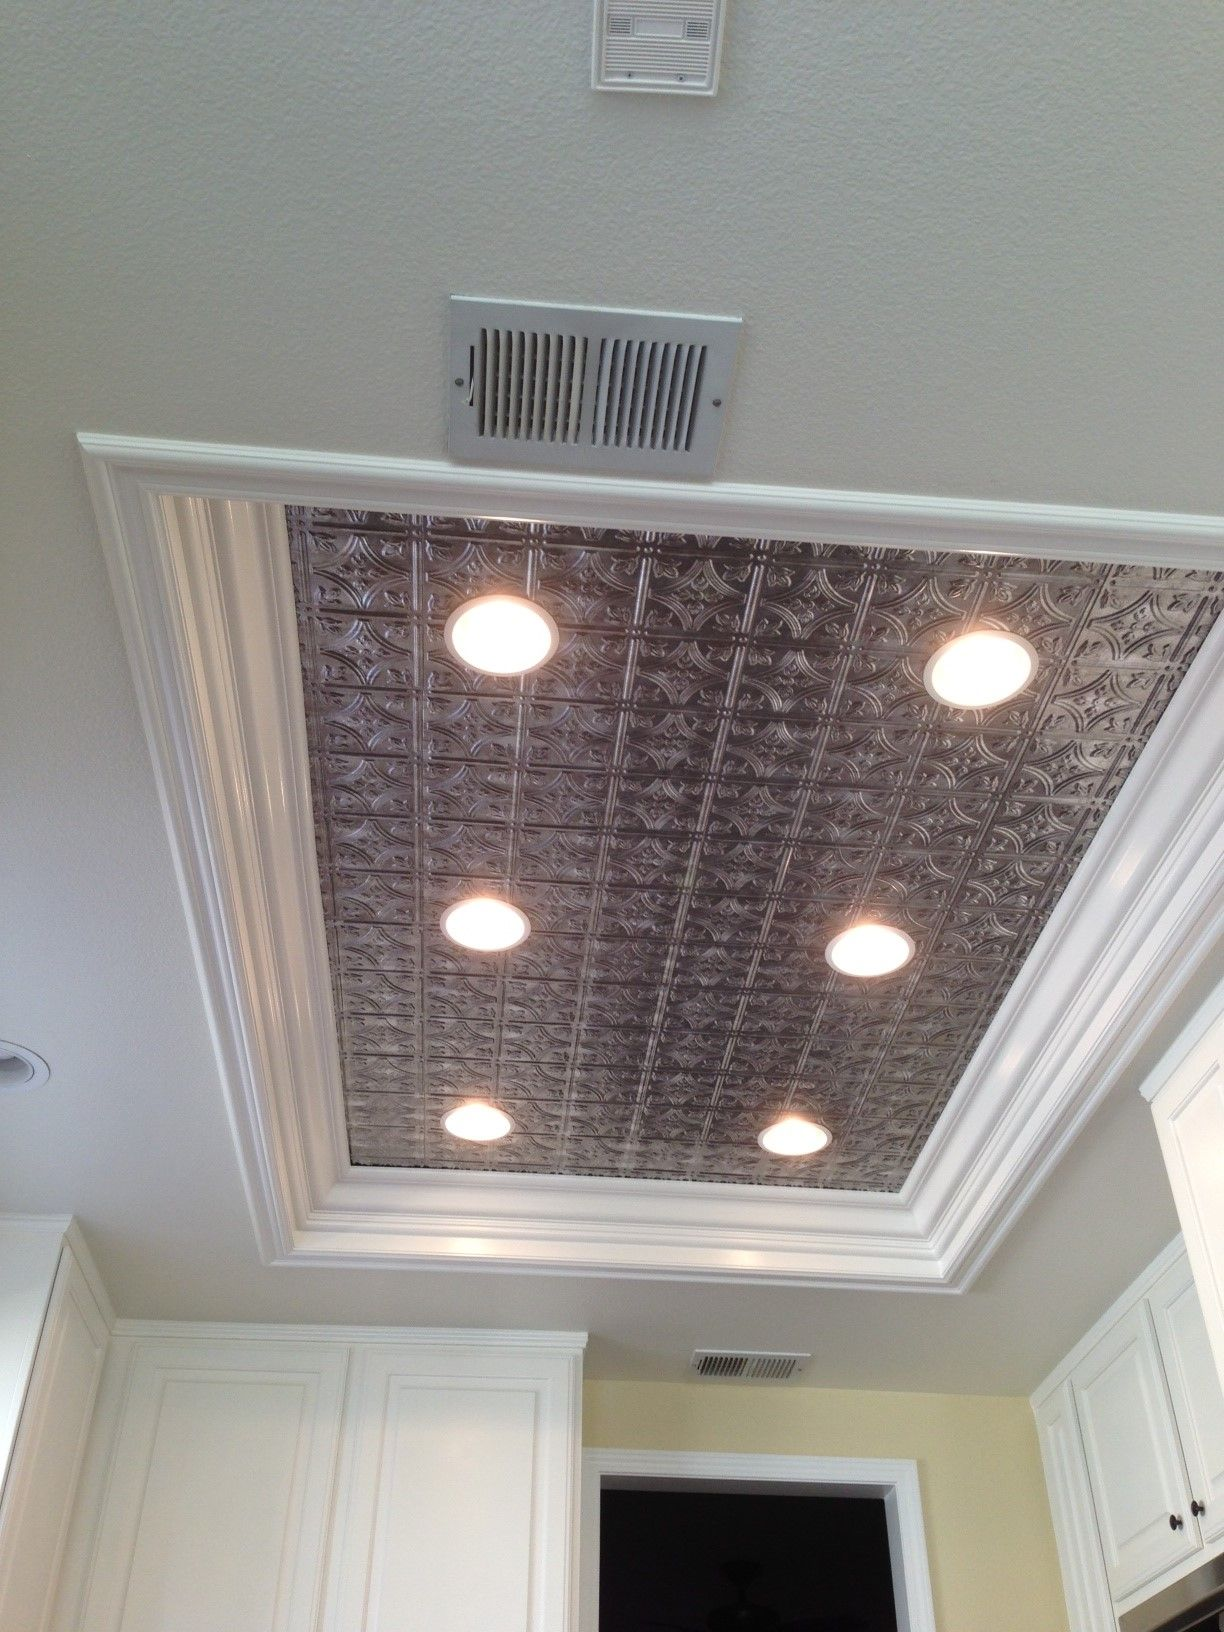 Lighting For Kitchen Ceiling Remodel Flourescent Light Box In Kitchen We Also Replaced The